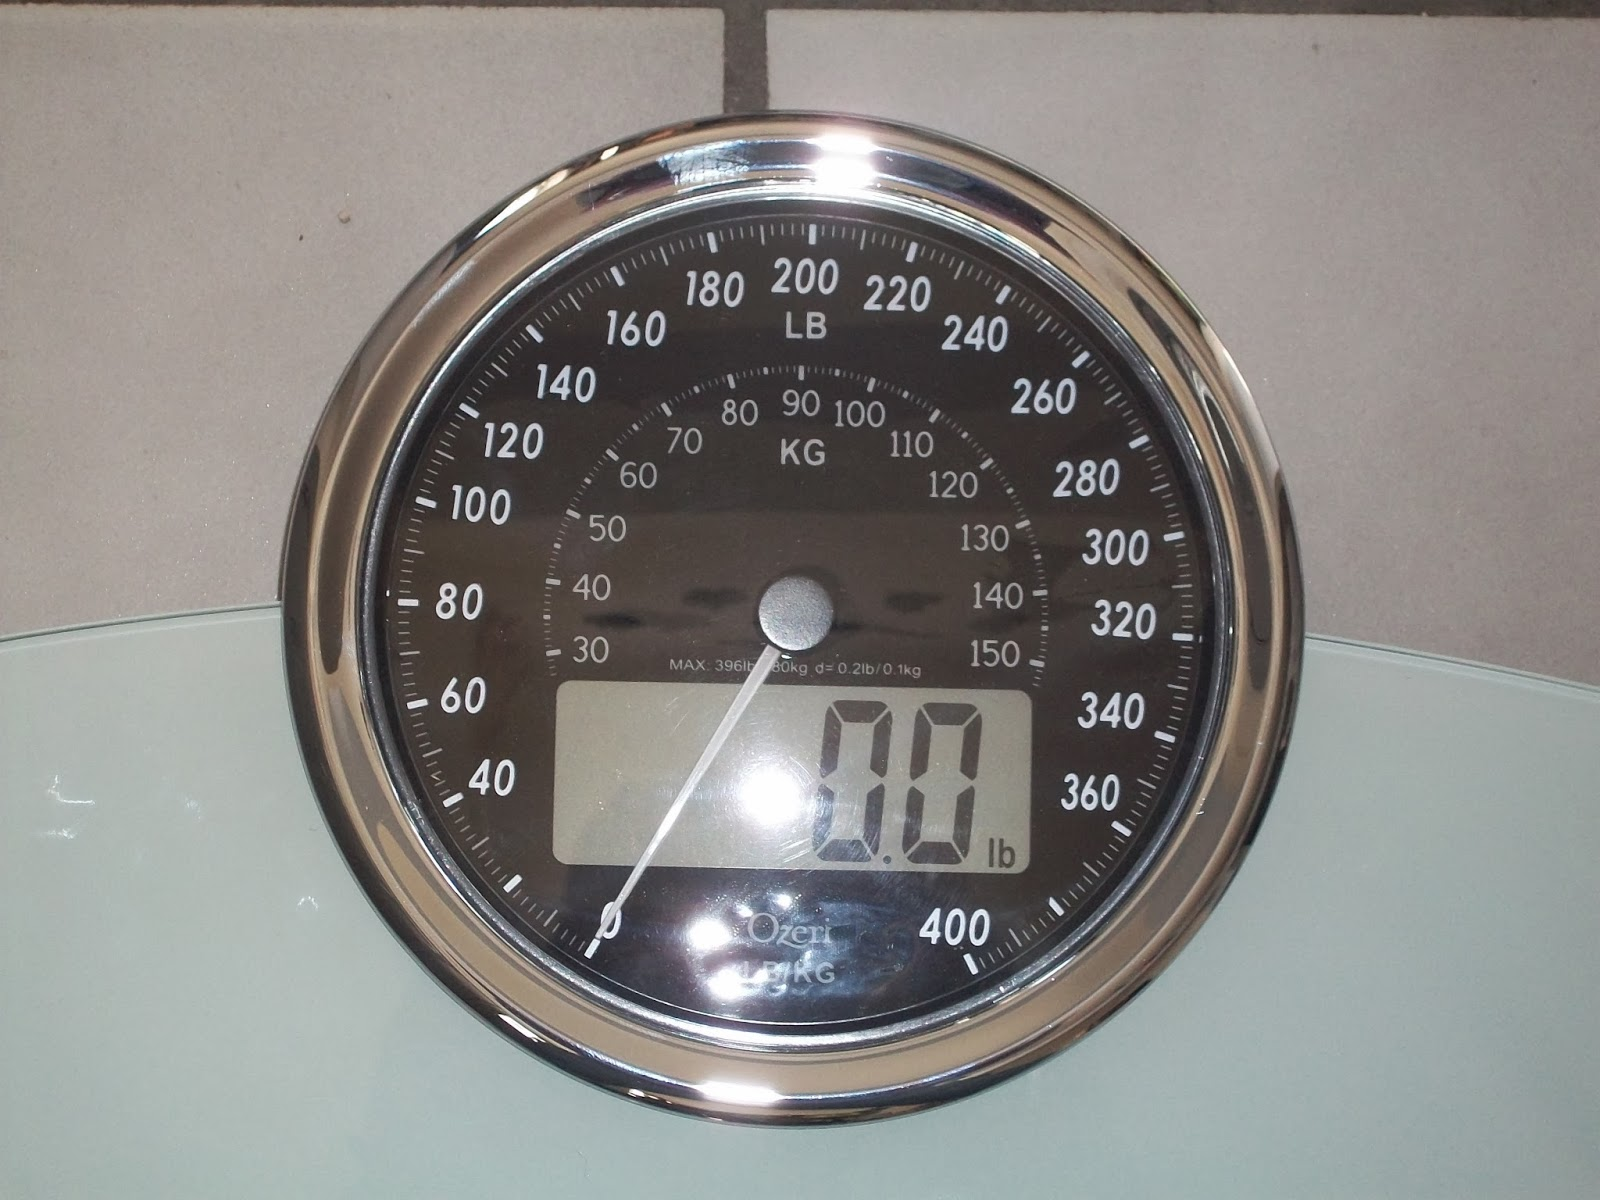 Batteries for bathroom scales - So If You Are Looking For A Scale That Will Look Cool In Any Bathroom The Ozeri Rev Digital Bathroom Scale Is The One As With All Ozeri Products